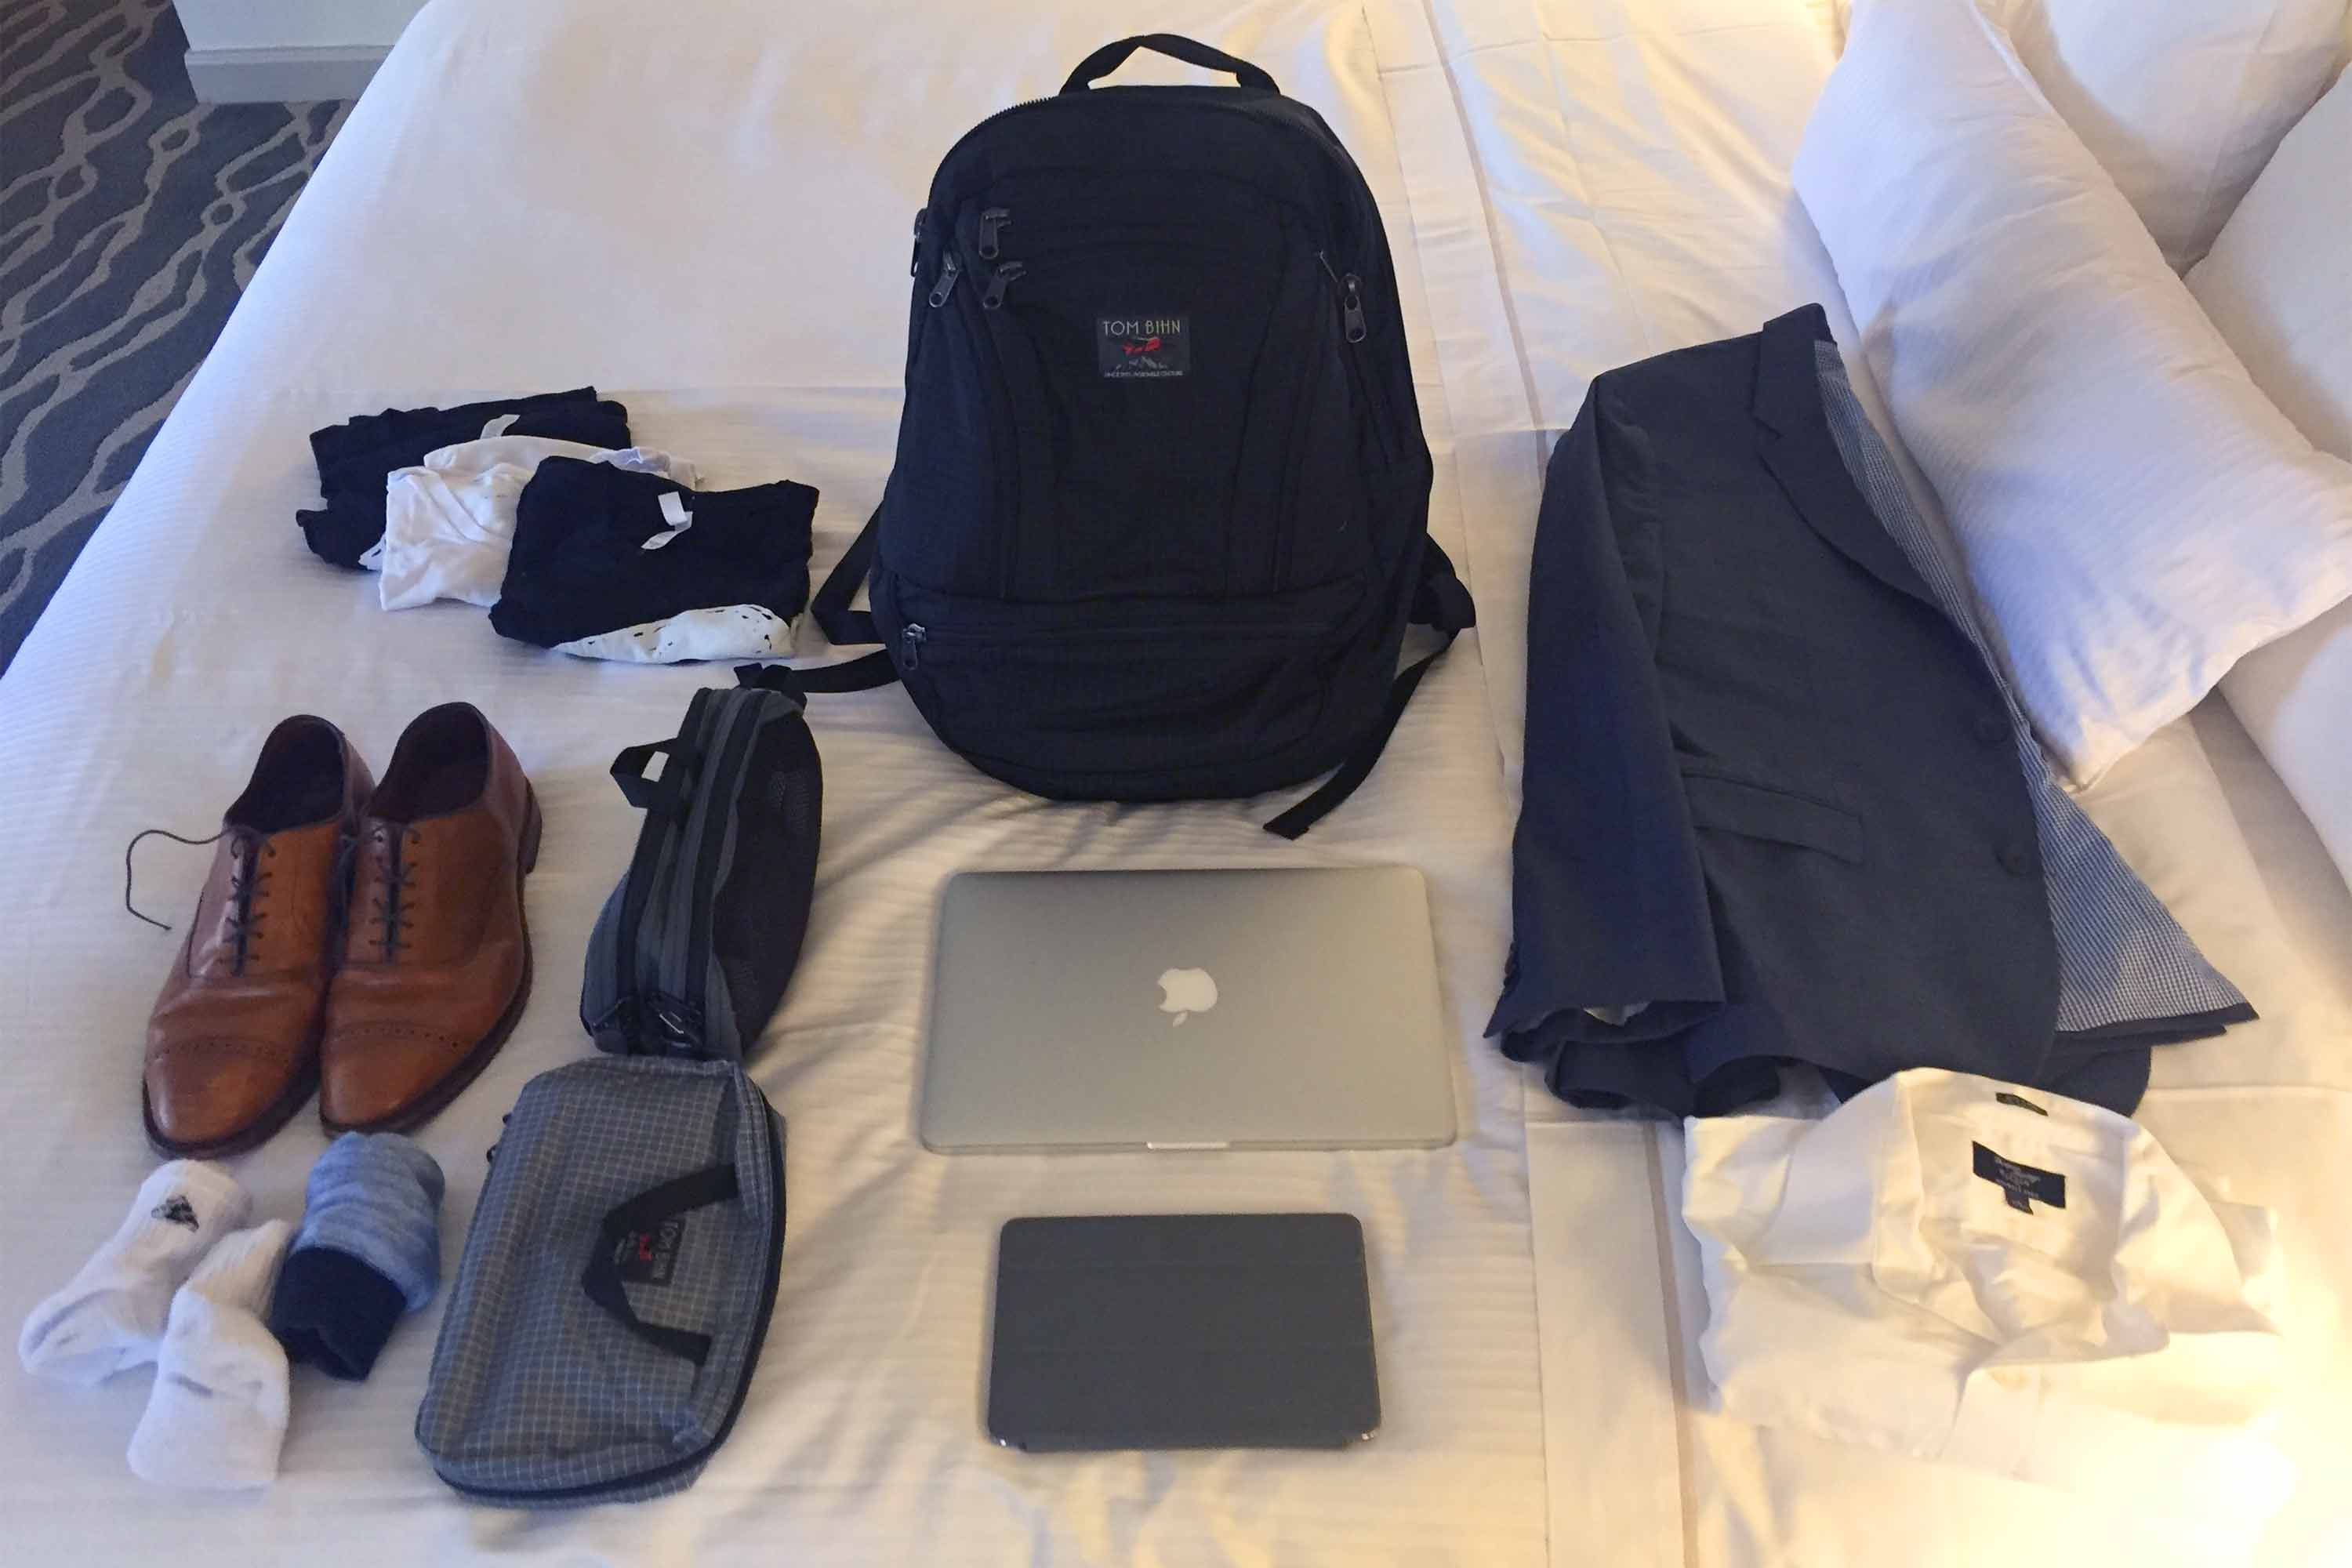 A backpack surrounded by the items that were packed inside it, including a suit jacket, a dress shirt, a laptop, an iPad, and some other clothing